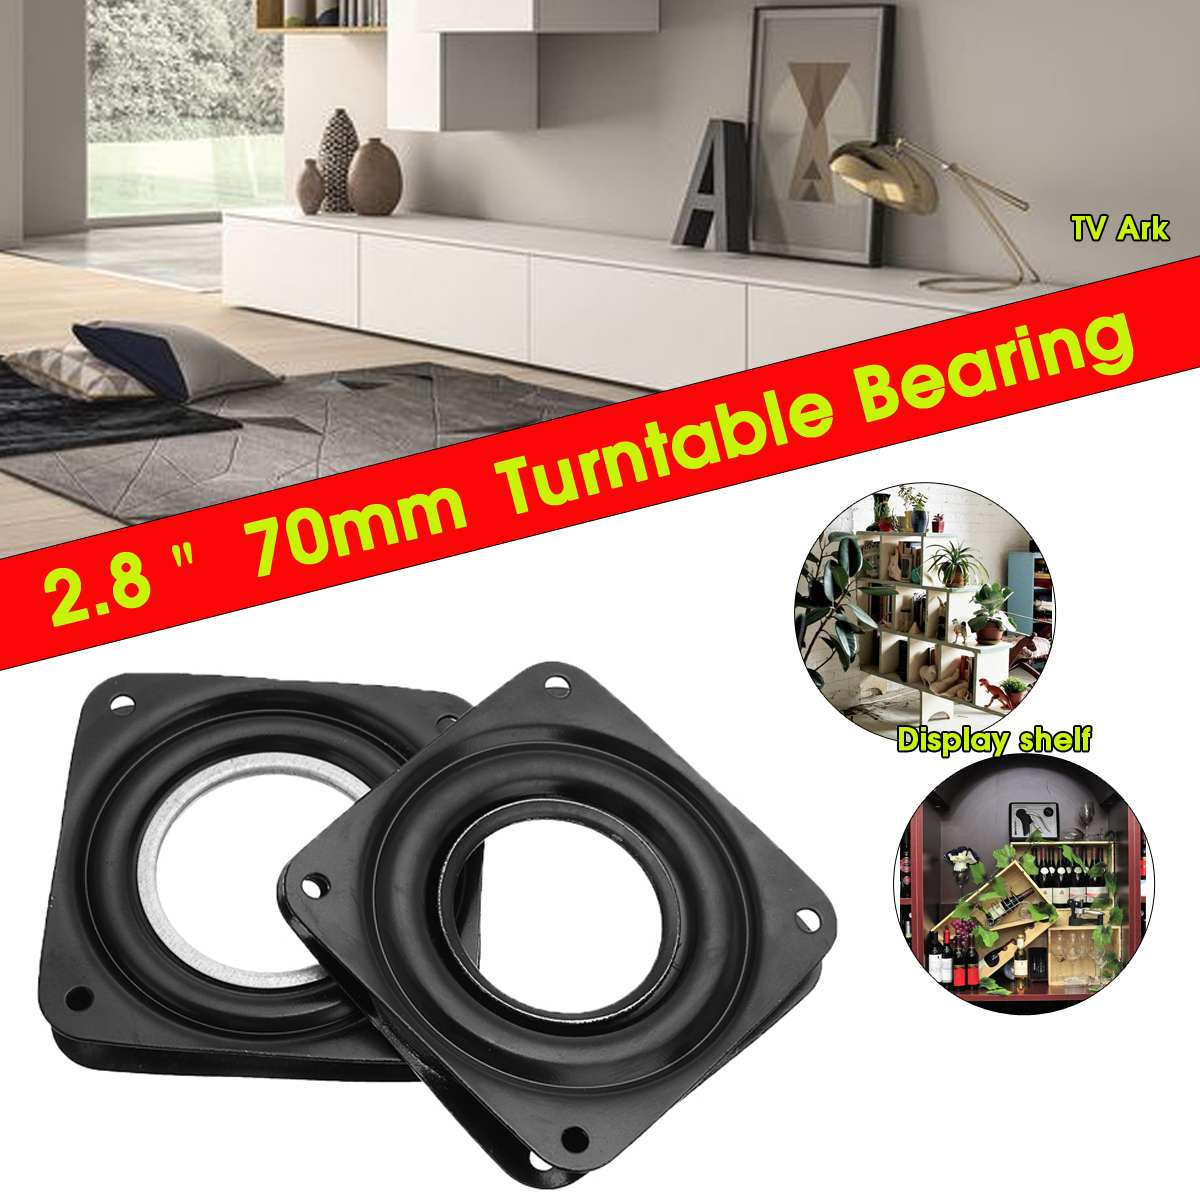 Search For Flights 3 Inch Rotating Plate Replacement Metal Lazy Susan Bearing Turntable Tv Rack Desk Seat Bar Tool 72mm X 72mm X 8.3mm Furniture Frames Furniture Parts